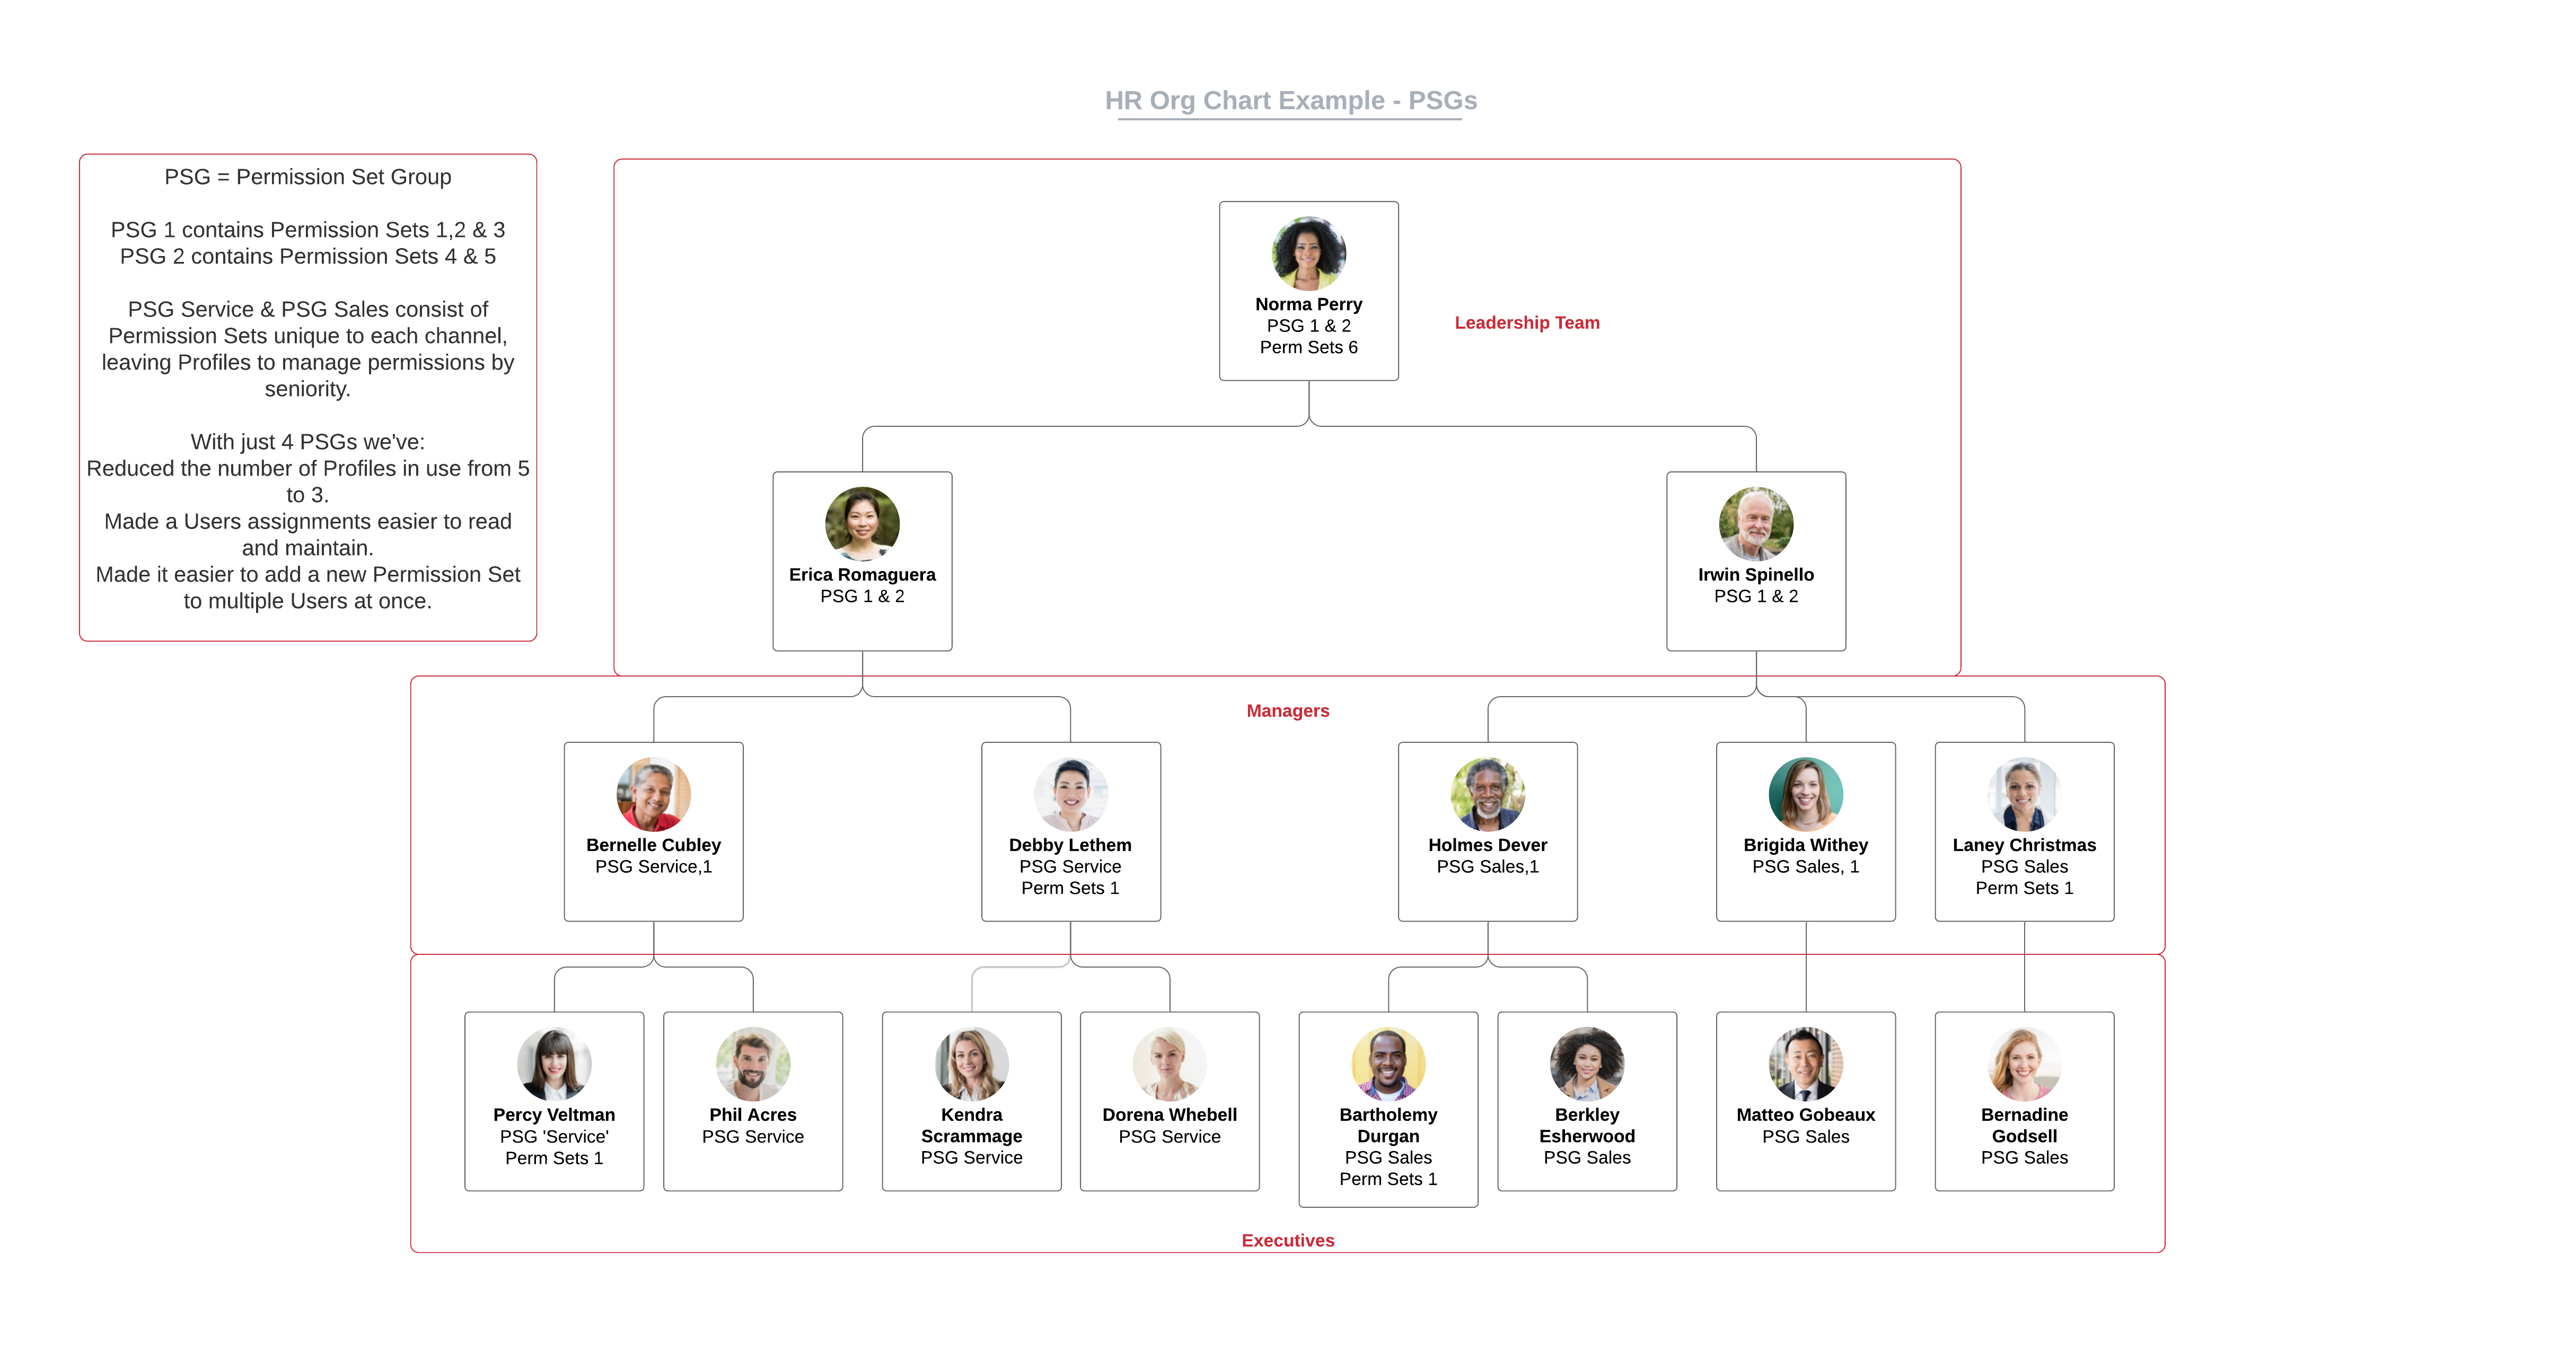 HR Org Chart Example using Permission Set Groups